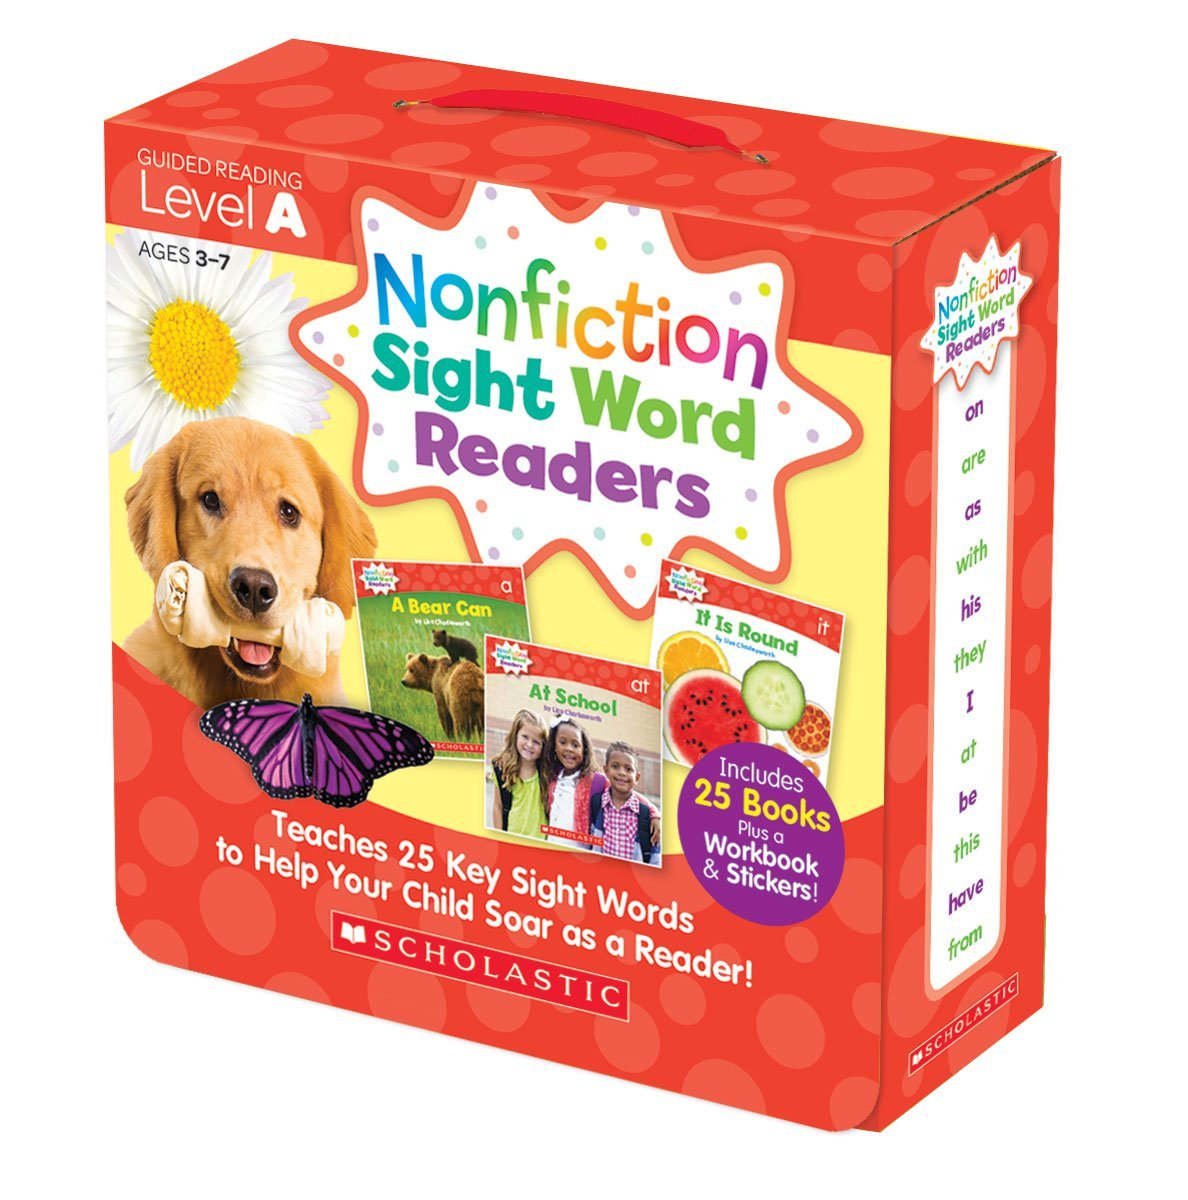 SC 584281 SIGHT WORD READERS LEVEL A